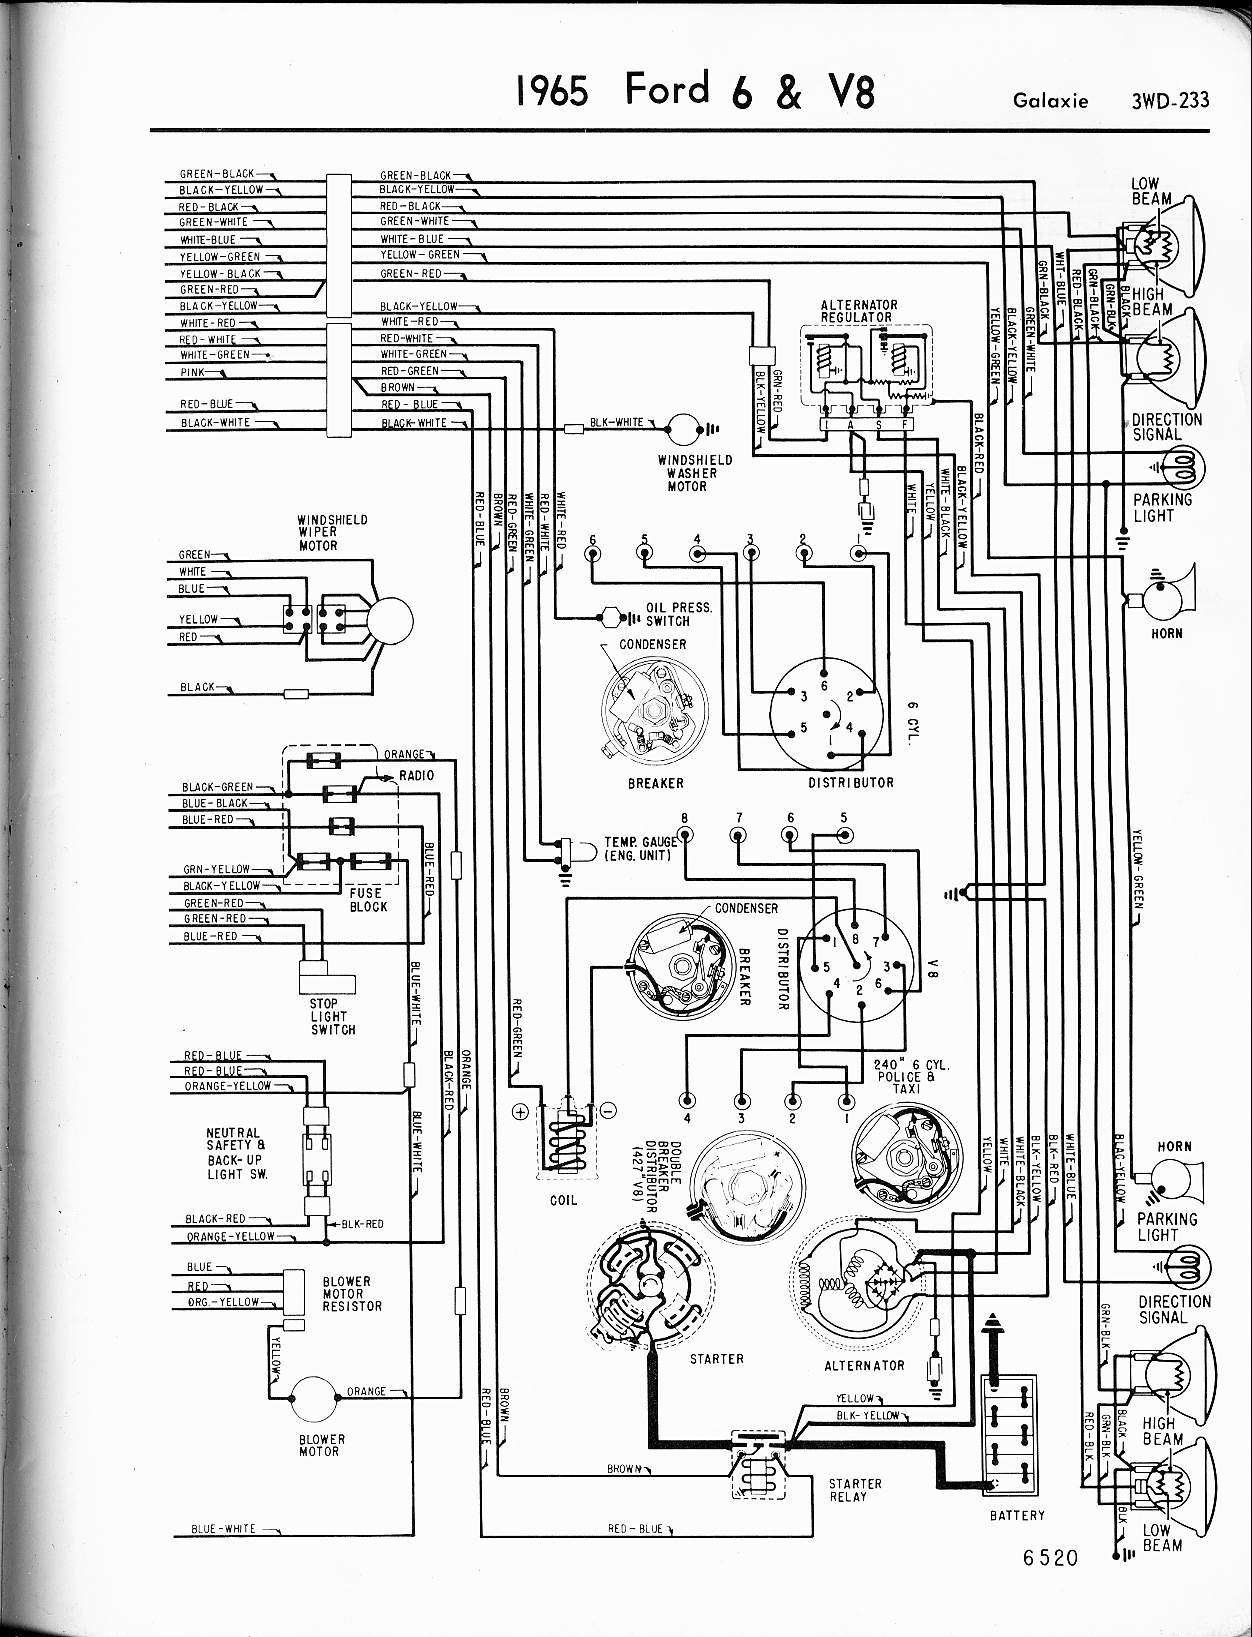 Ford Electrical Diagrams - wiring diagram on the net on